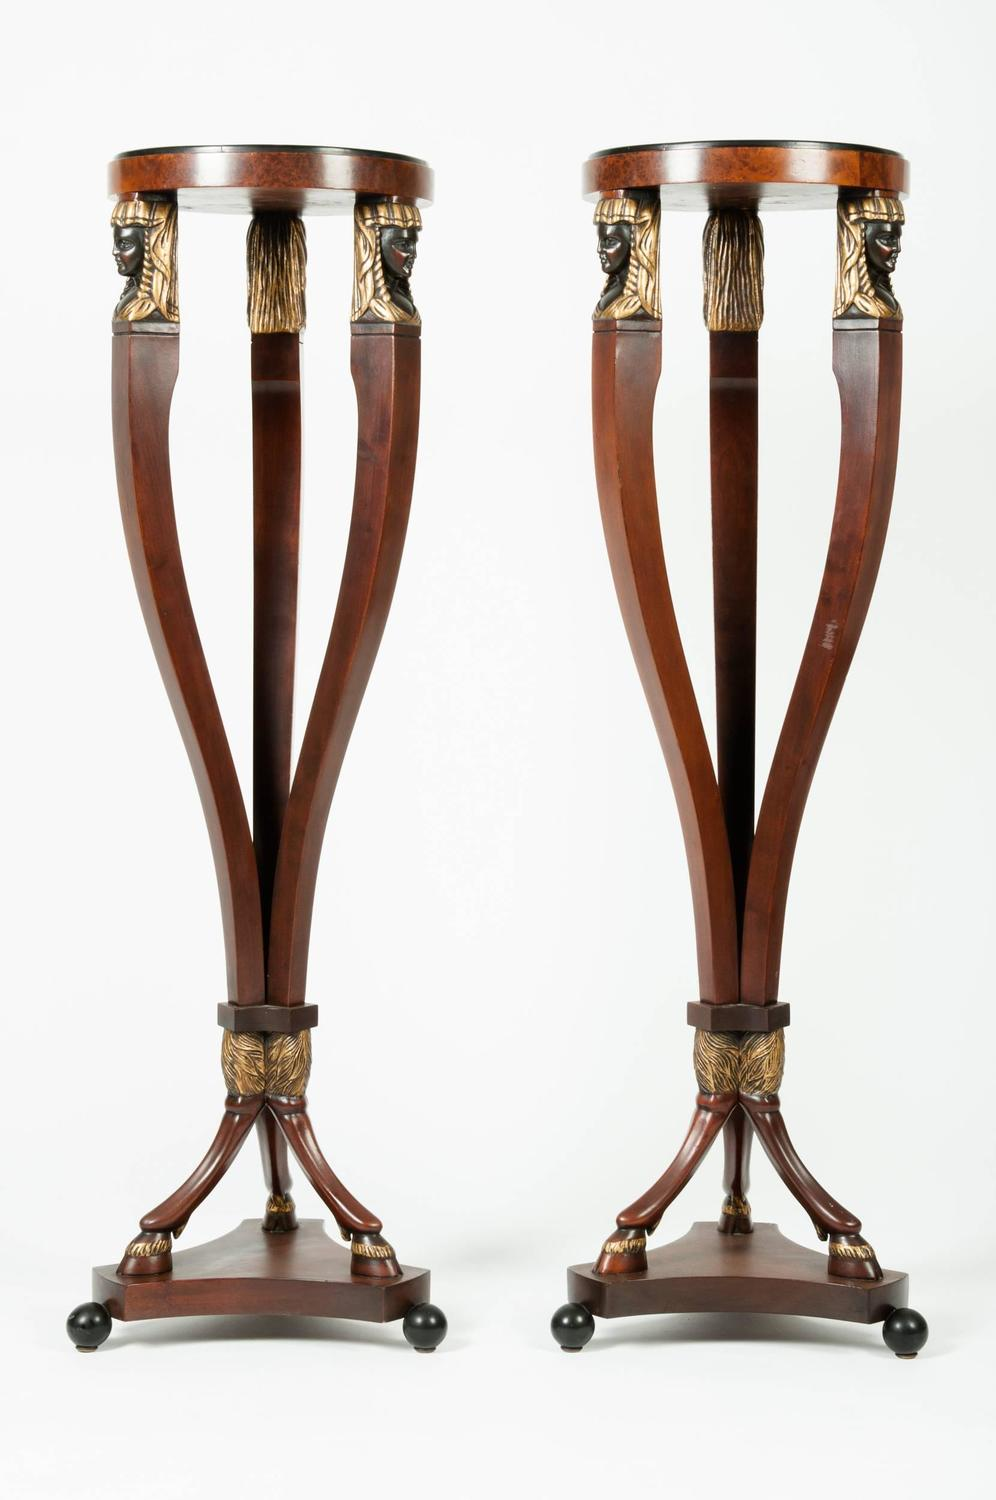 Vintage Pair of Tall Pedestal Tables at 1stdibs